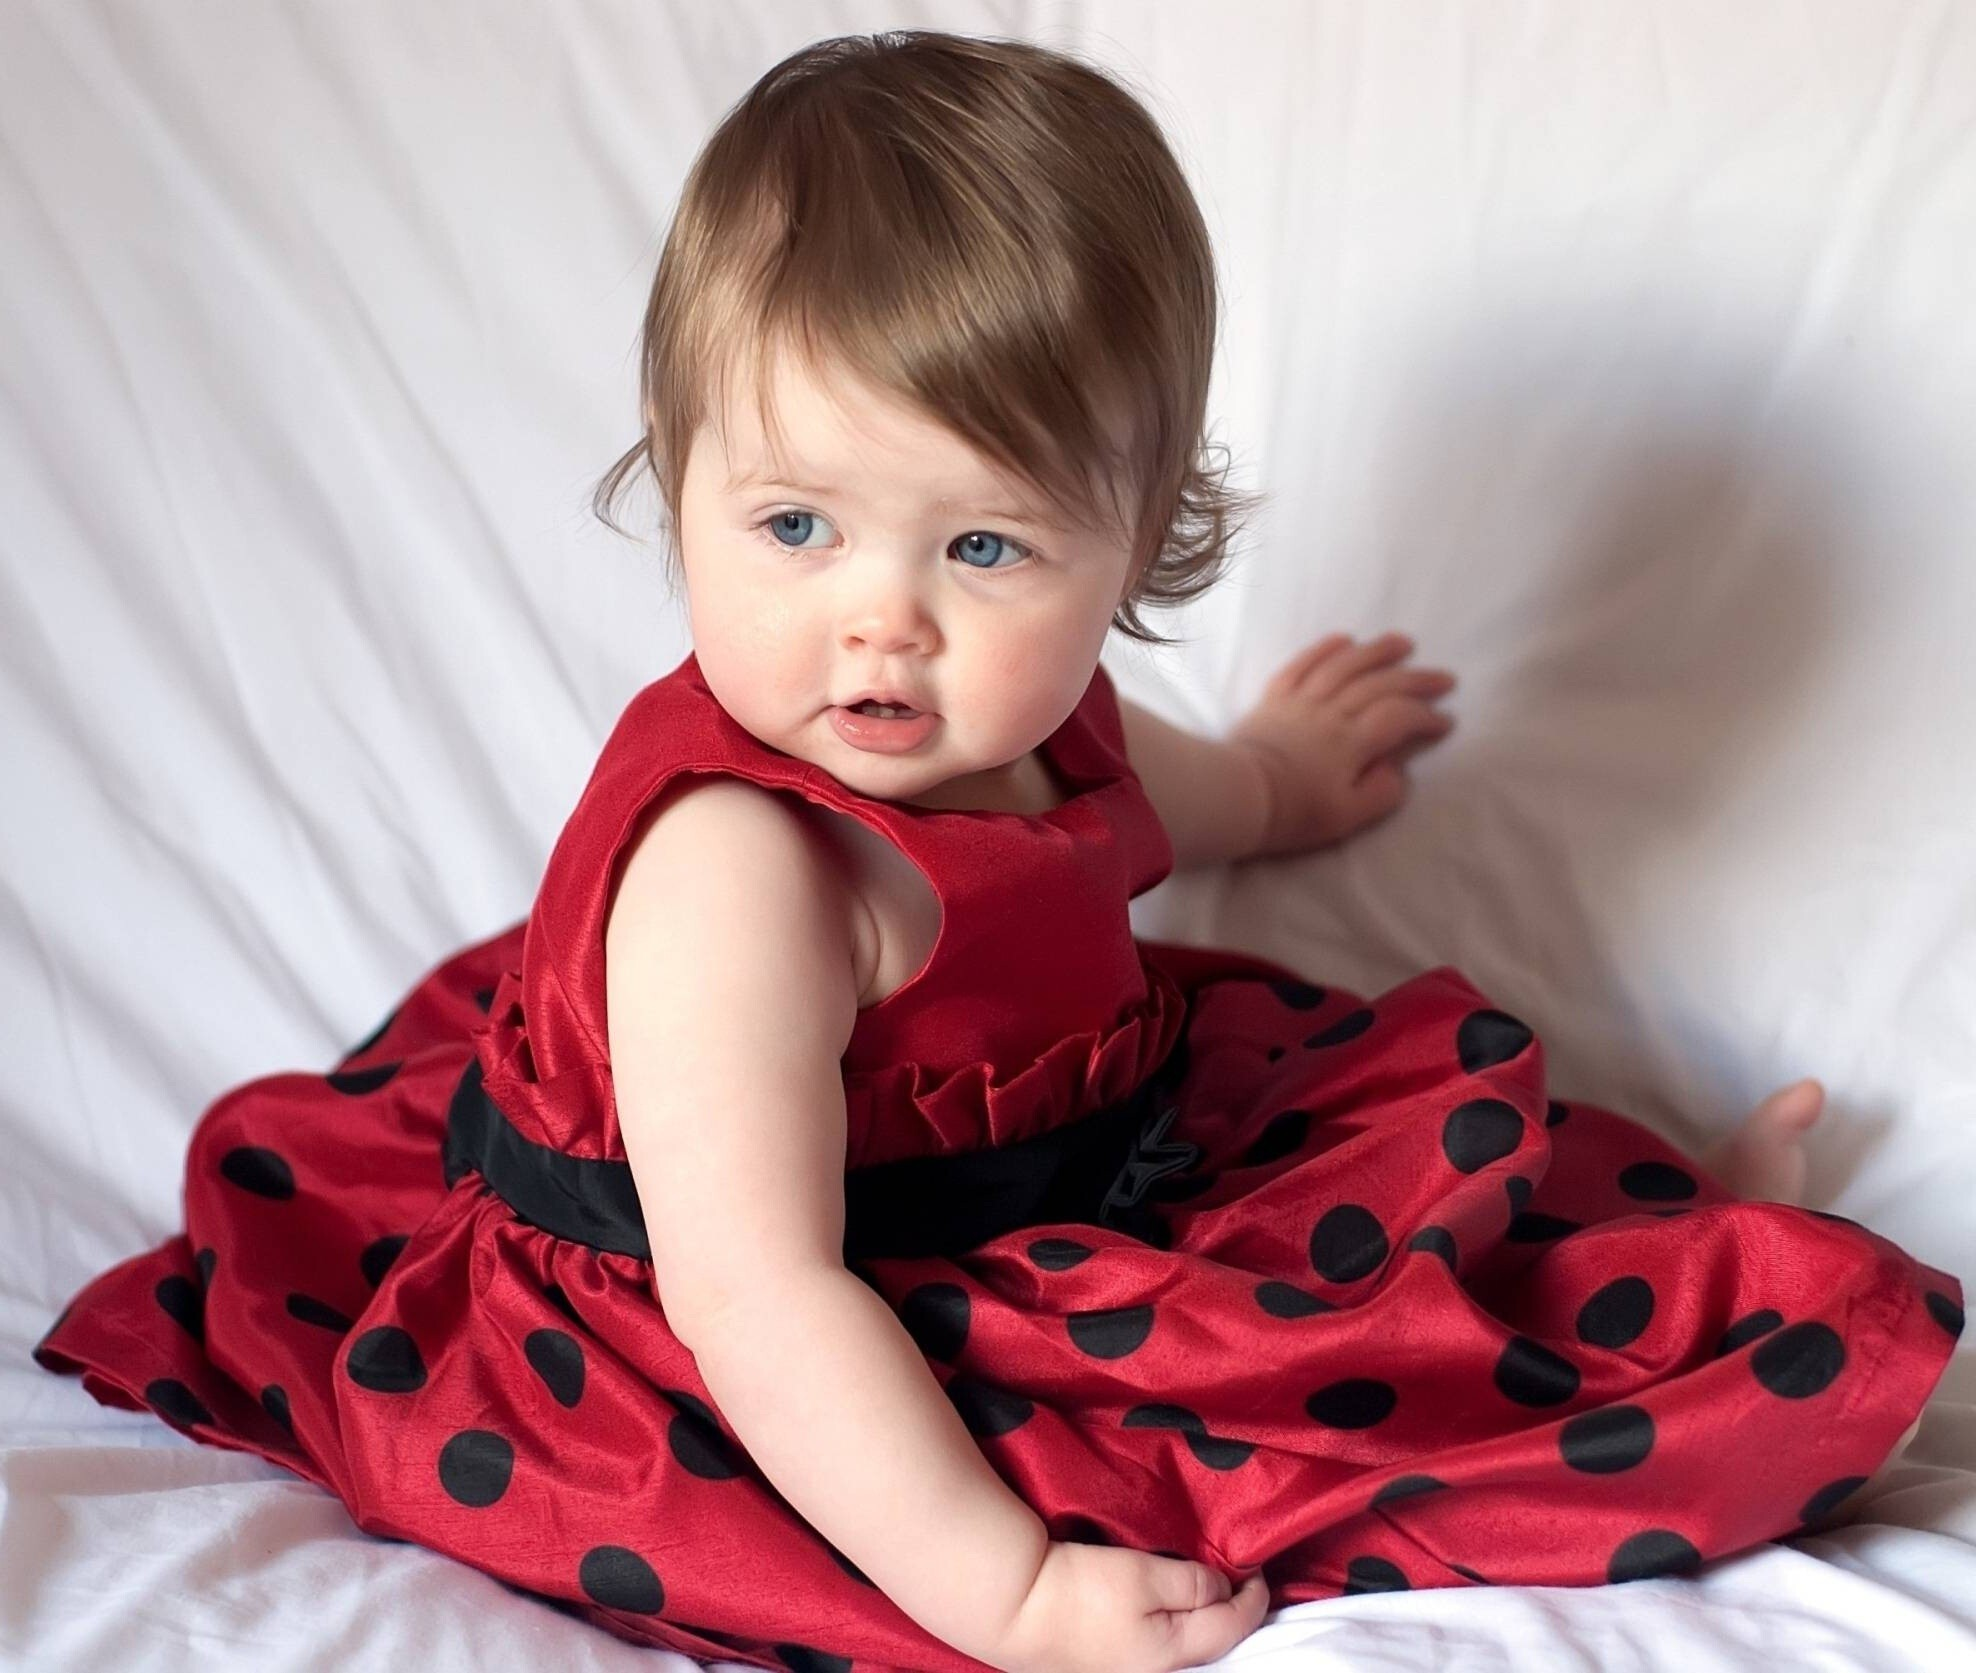 Cutest baby in the world hd wallpapers hd wallpapers cute baby wallpapers voltagebd Image collections